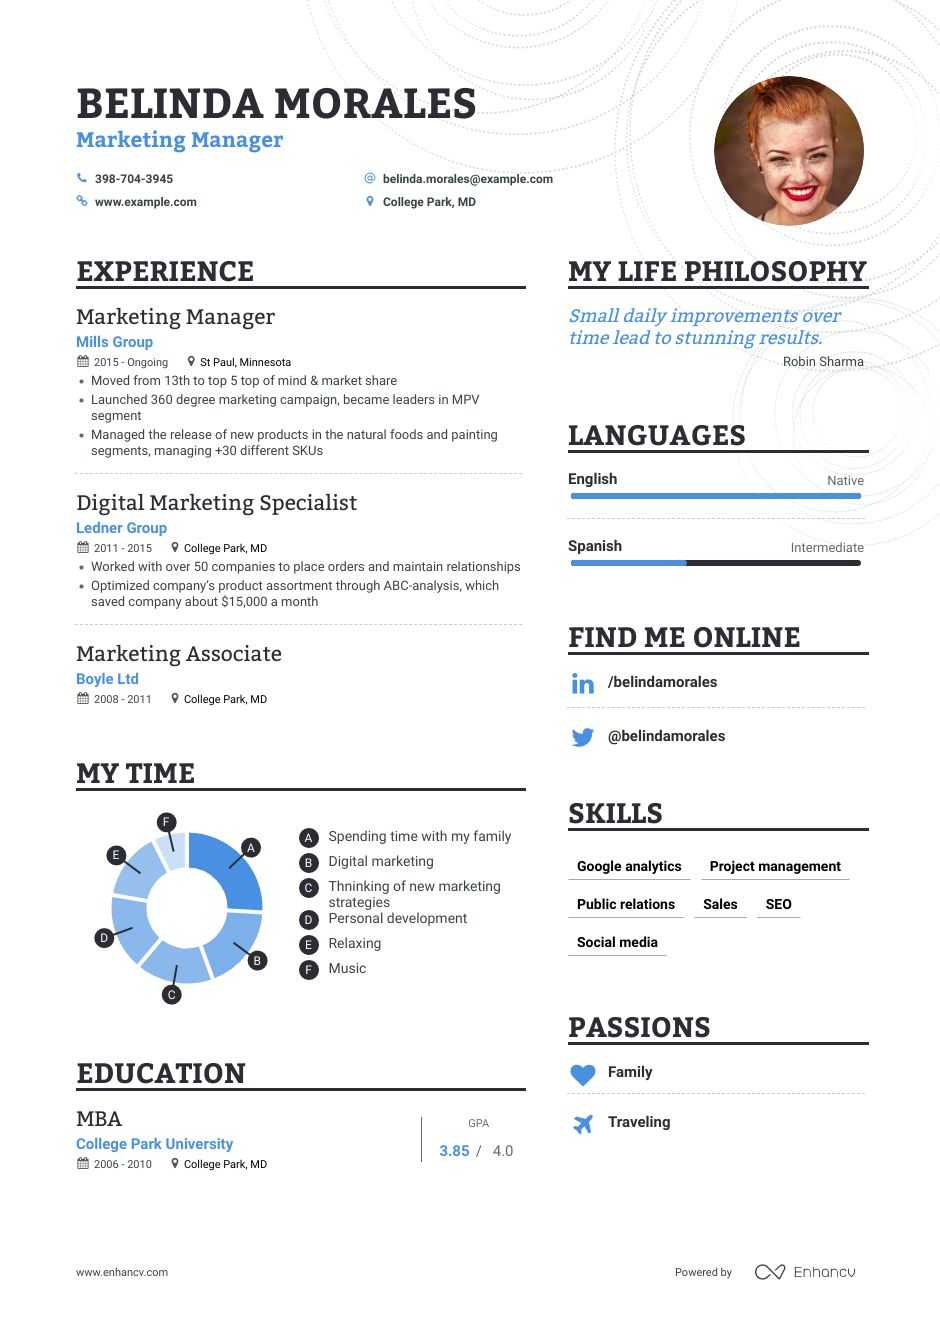 marketing manager resume samples step by guide for enhancv same job different company web Resume Marketing Manager Resume